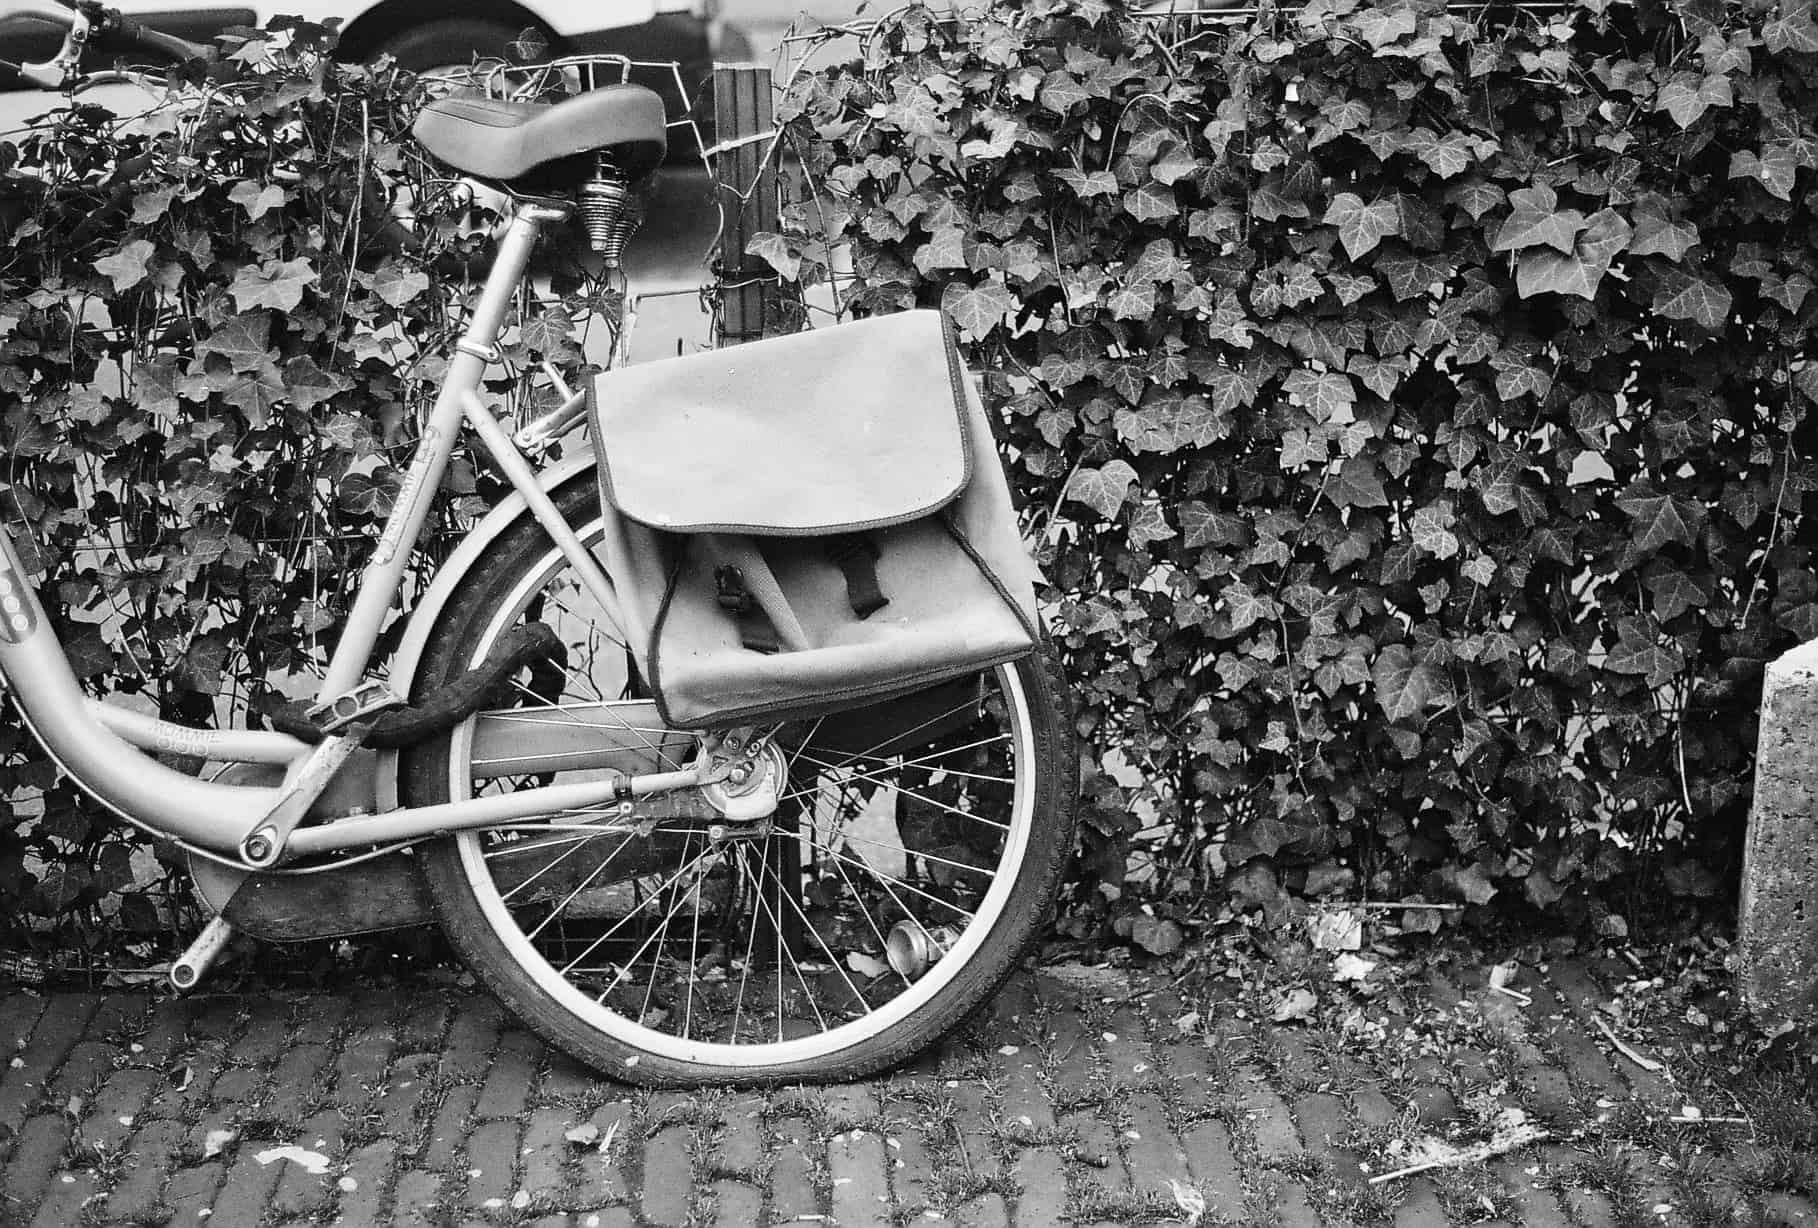 Flat Bicycle Tire Amsterdam